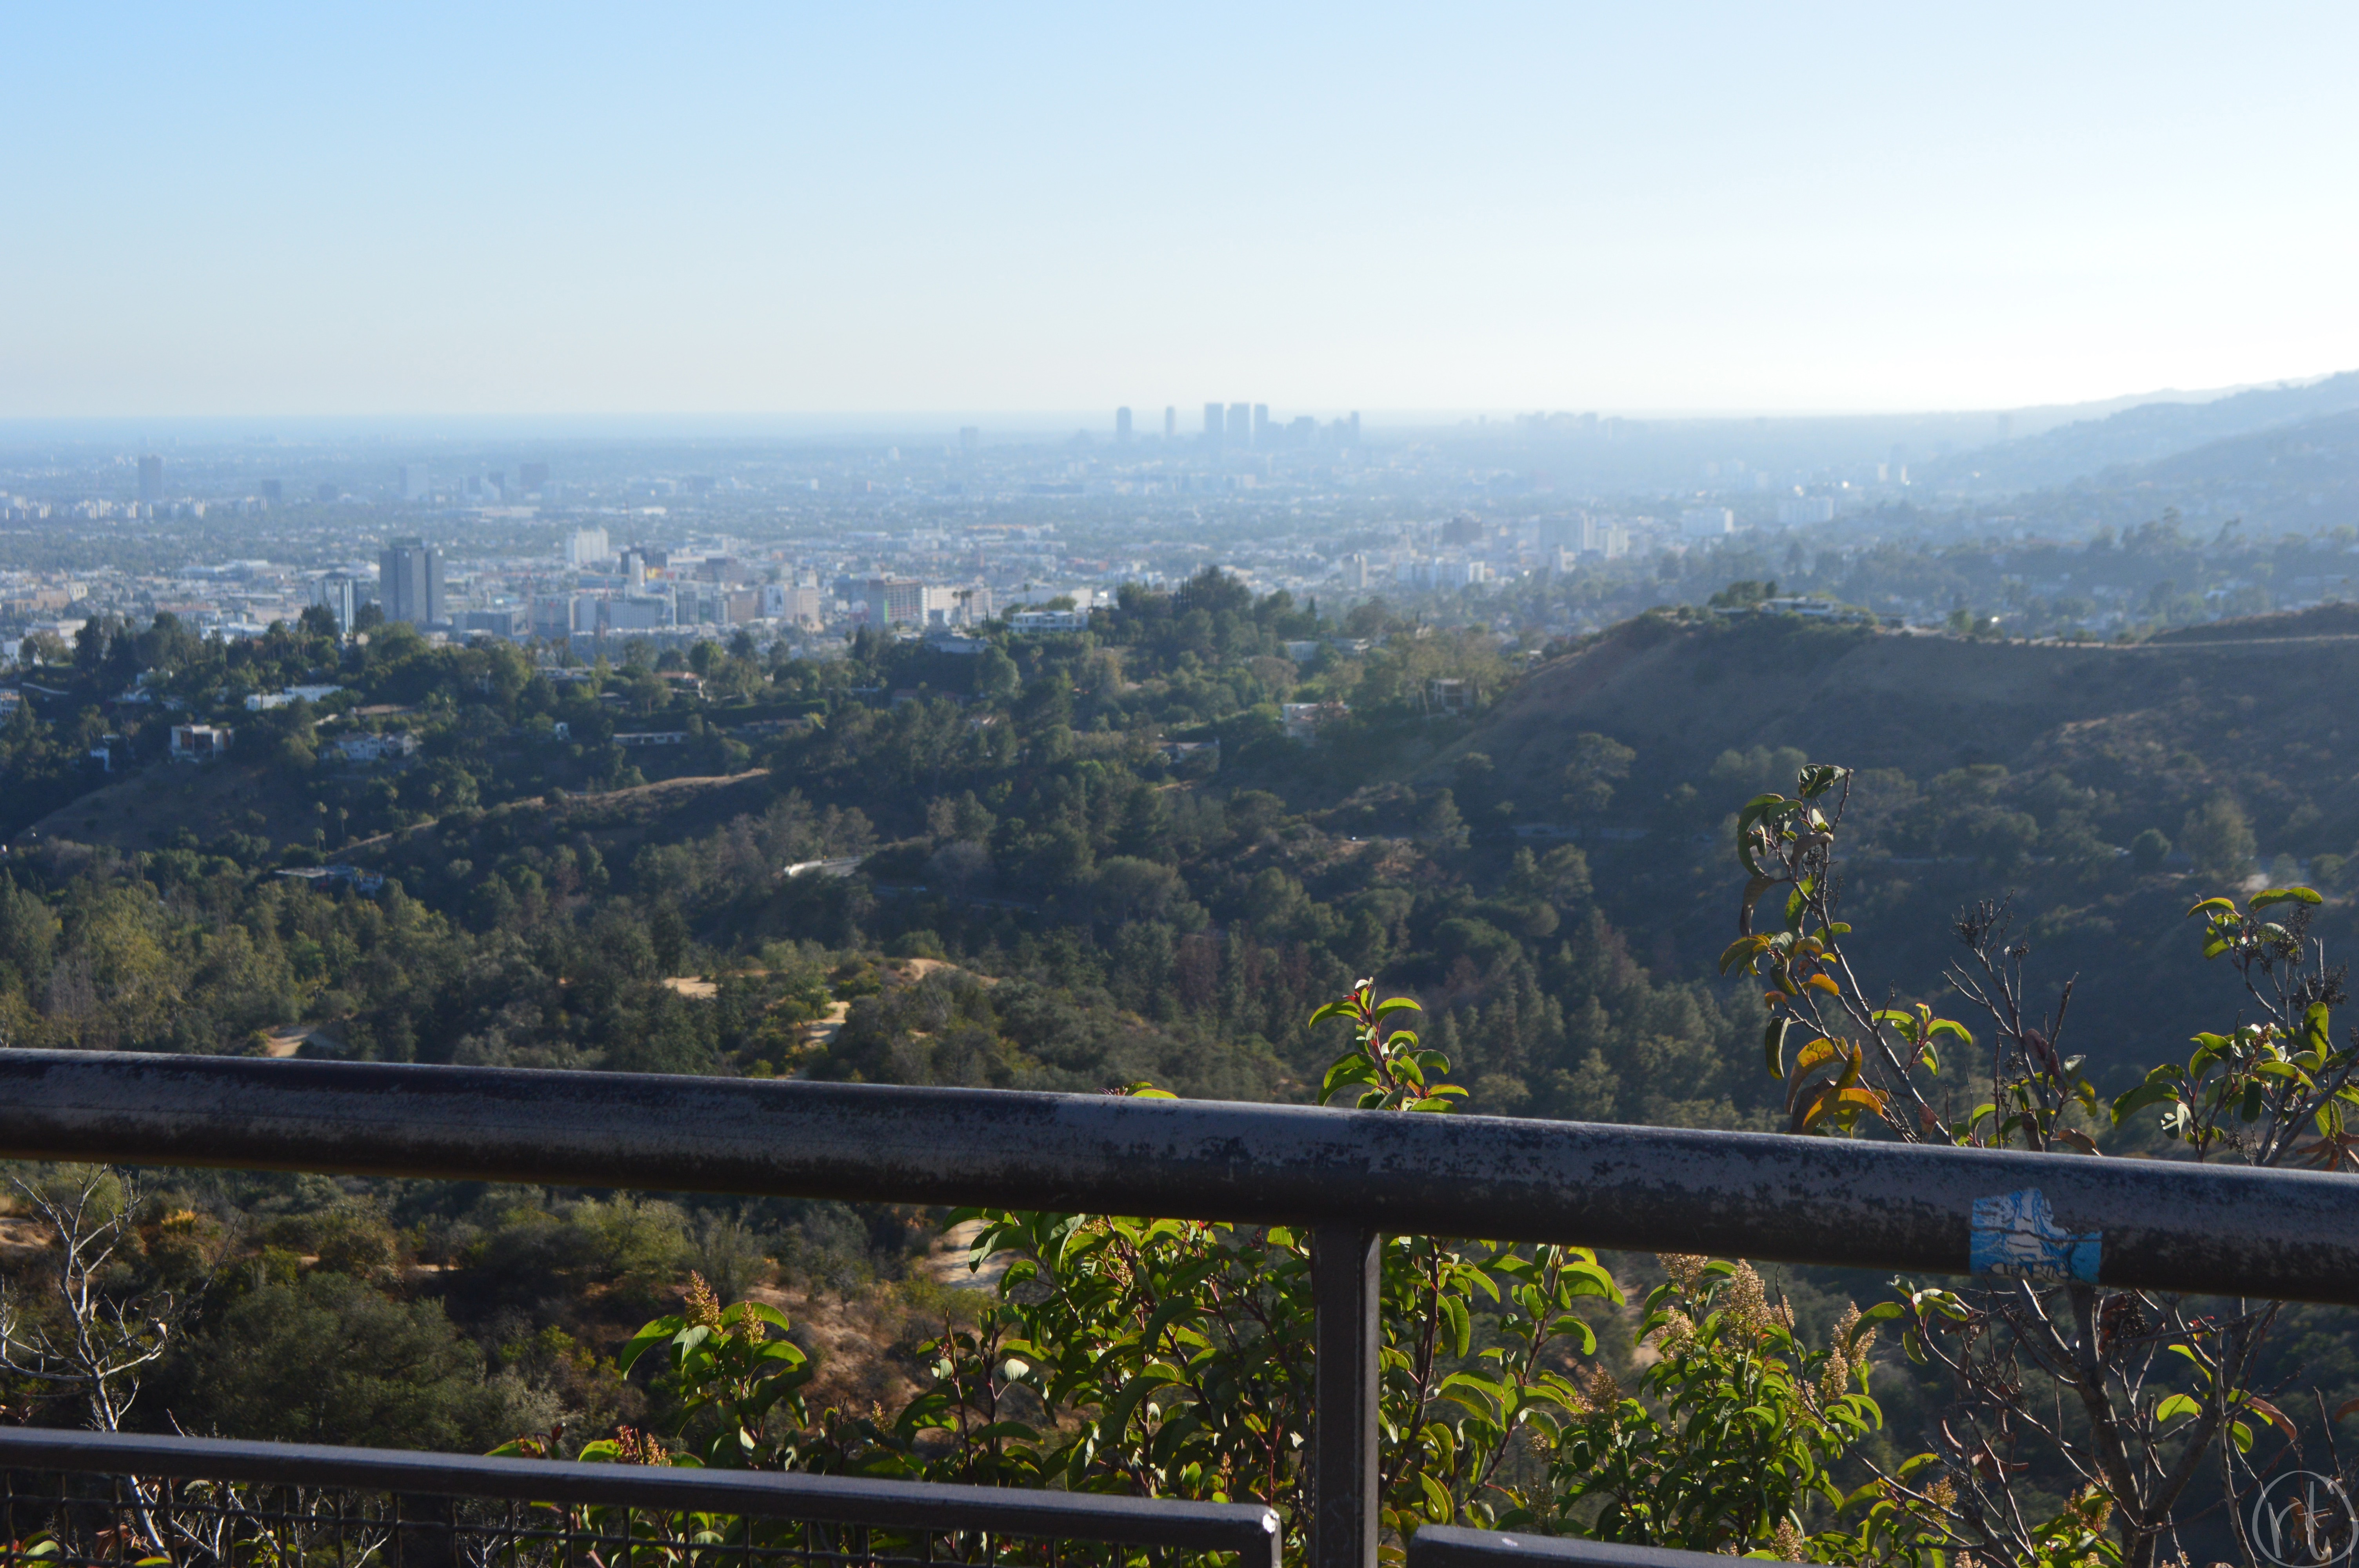 griffith-observatory-los-angeles-california-city